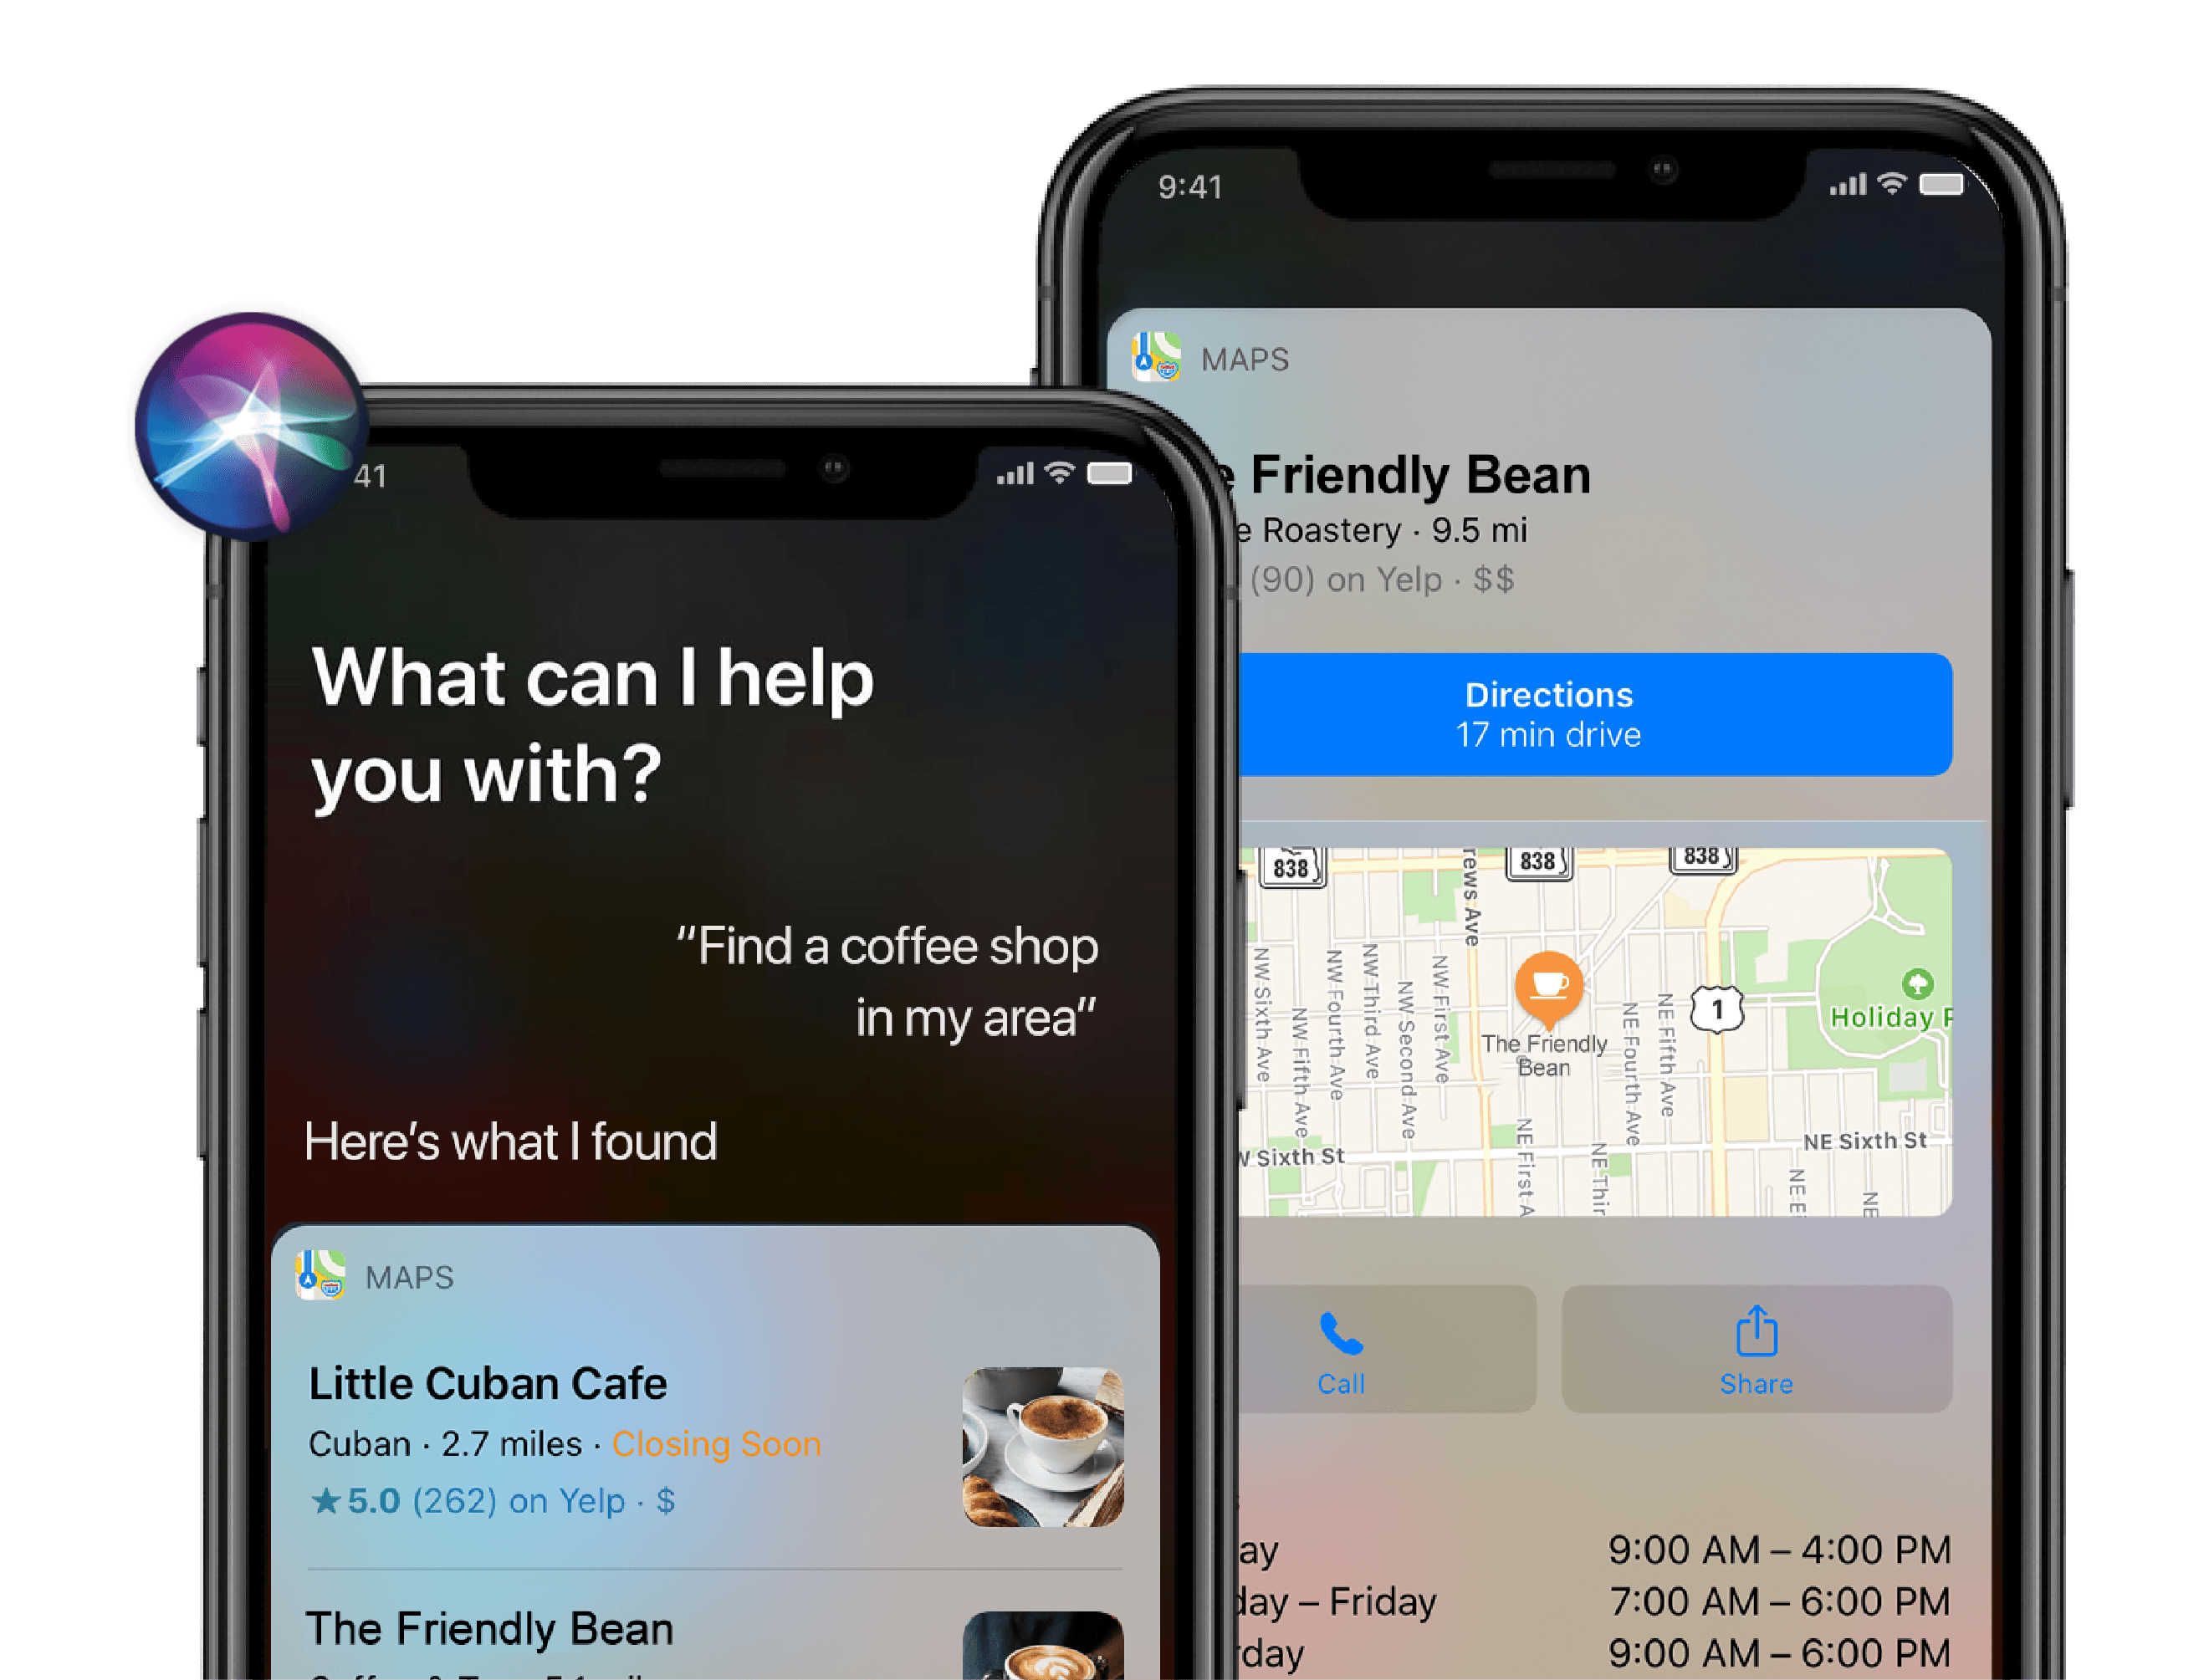 how to get my business on siri